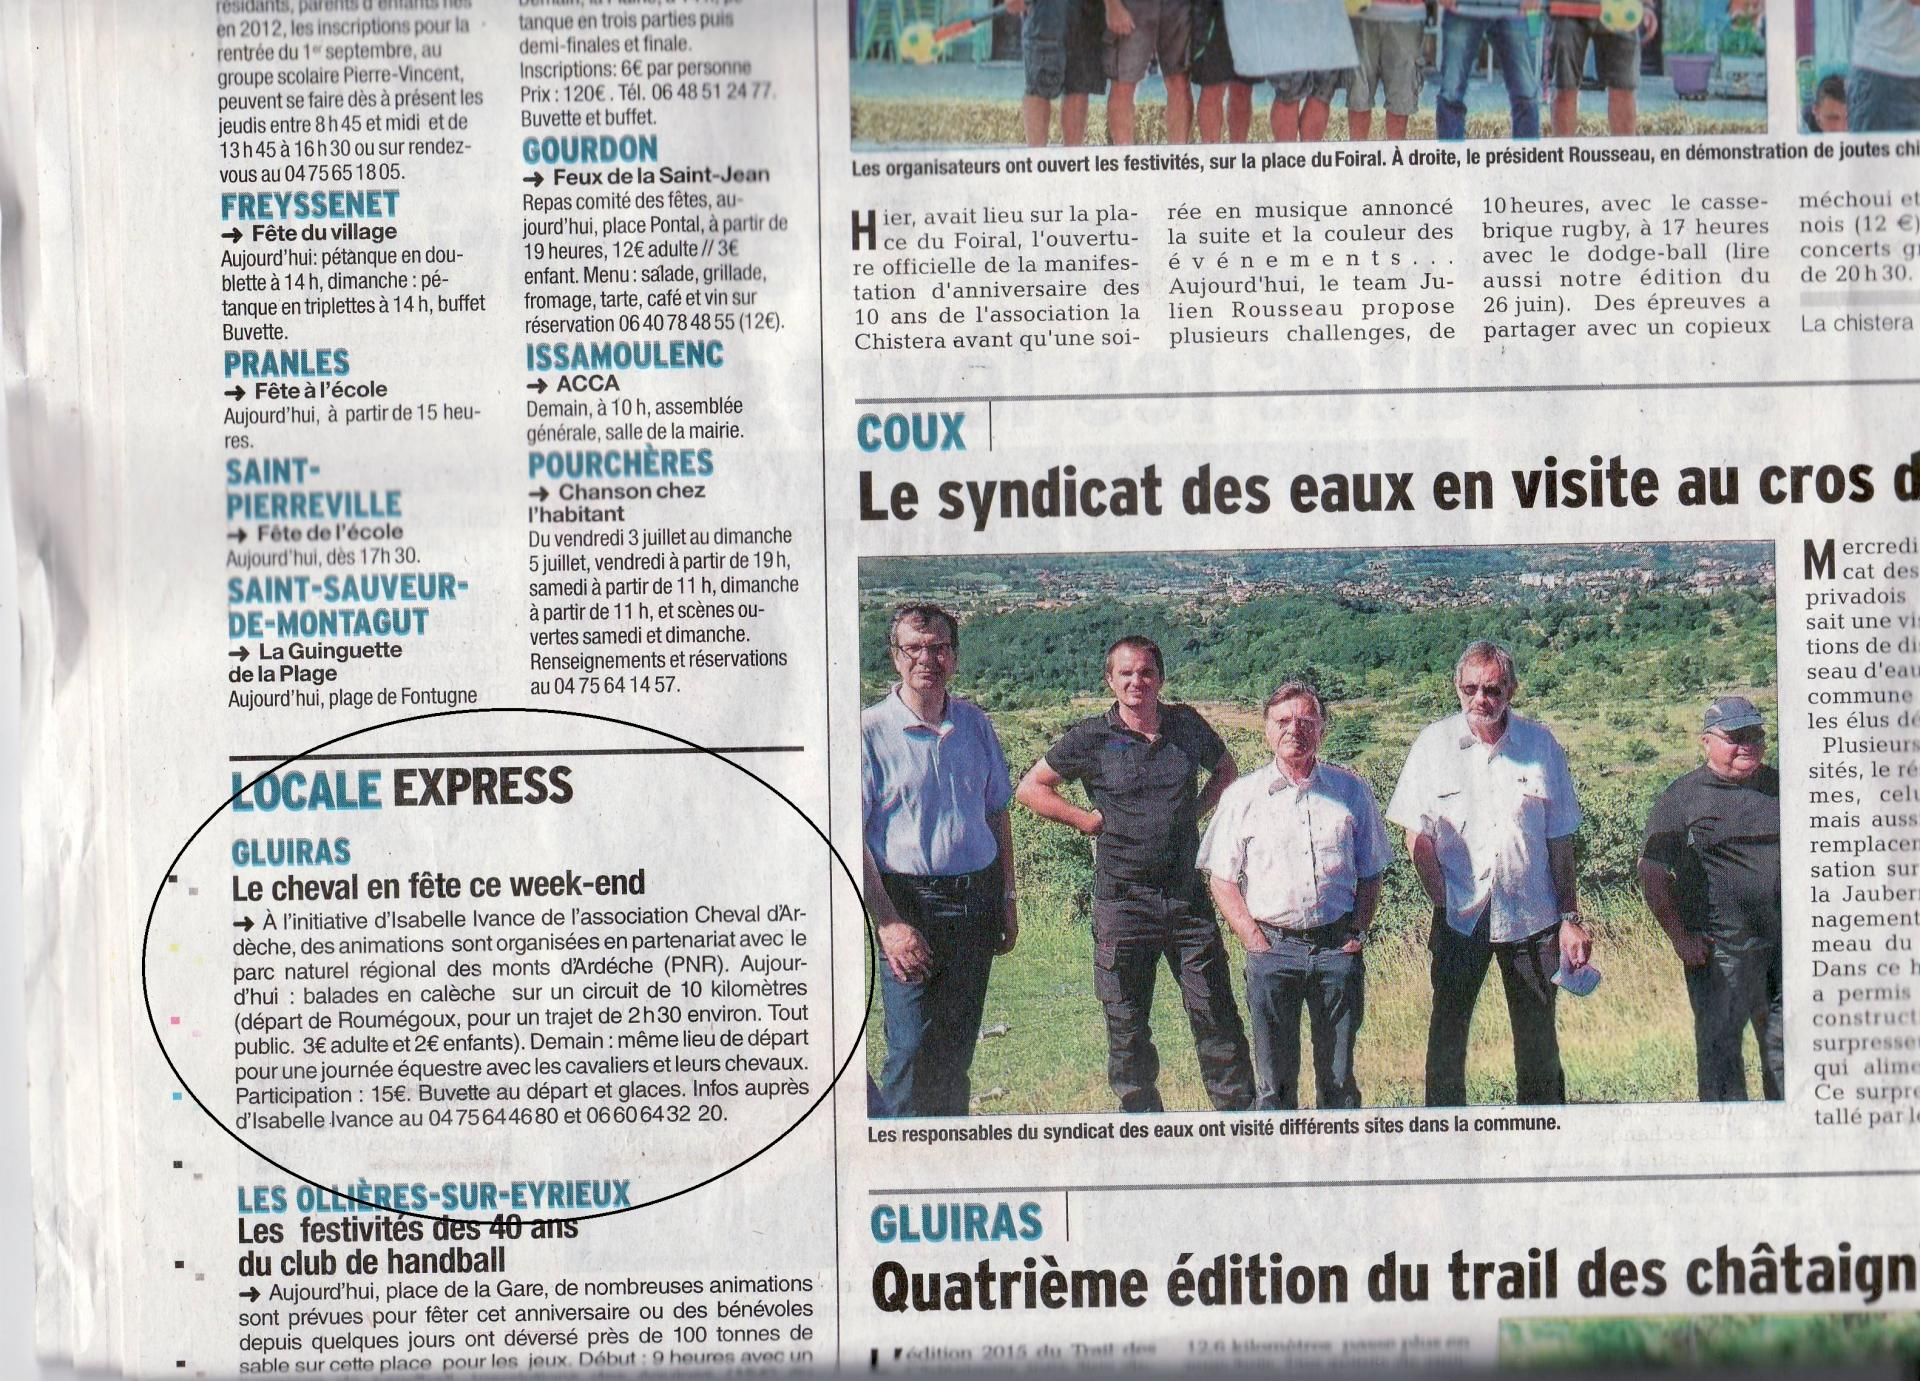 D l local express 27 juin 2016